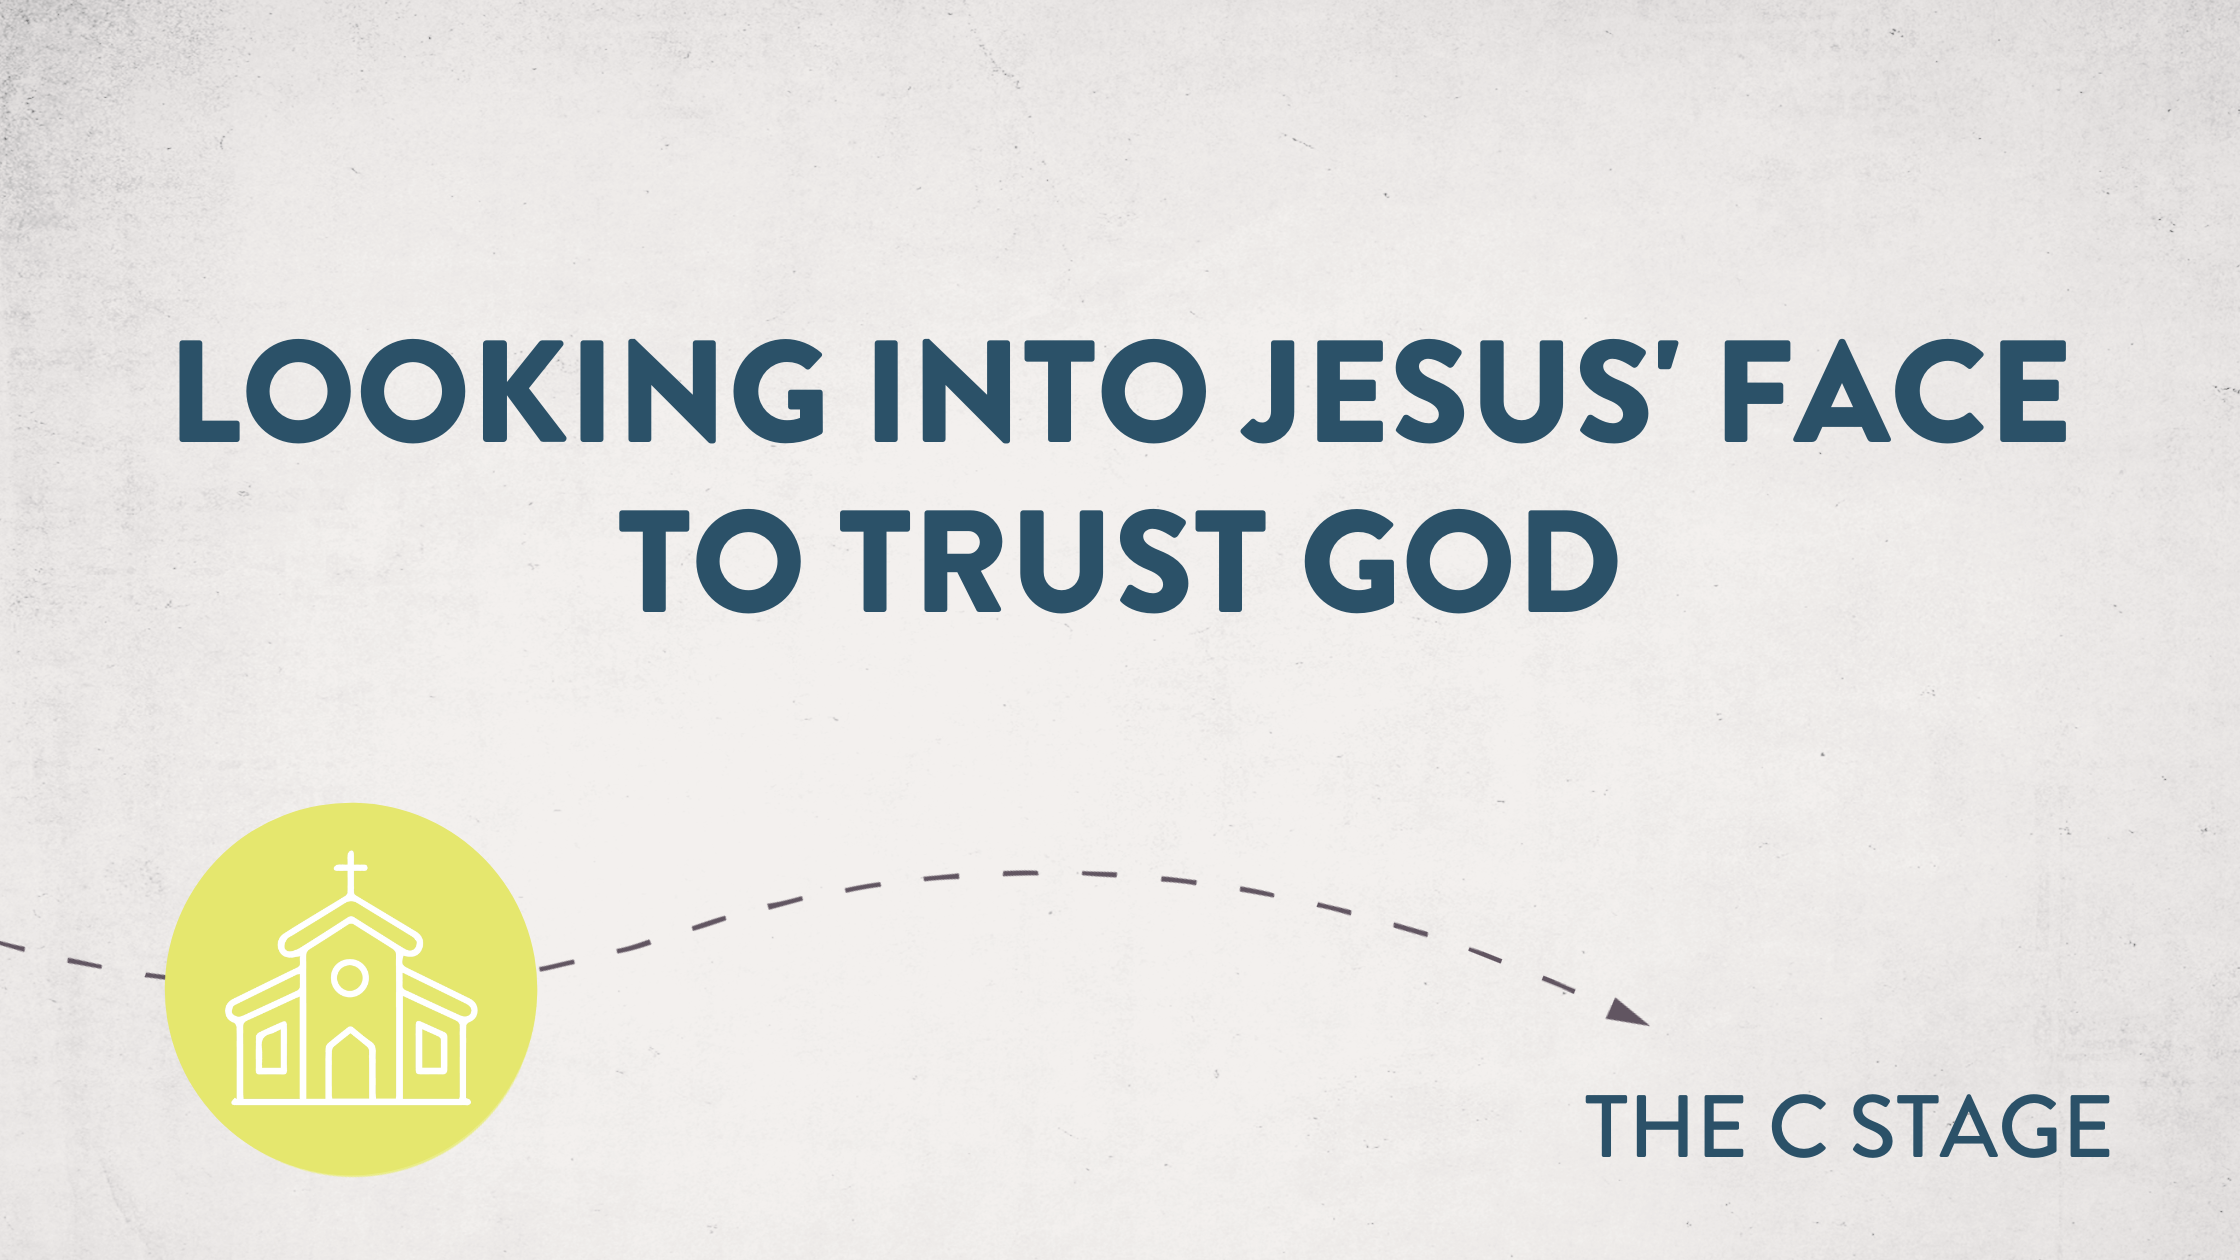 Looking into Jesus' Face to Trust God